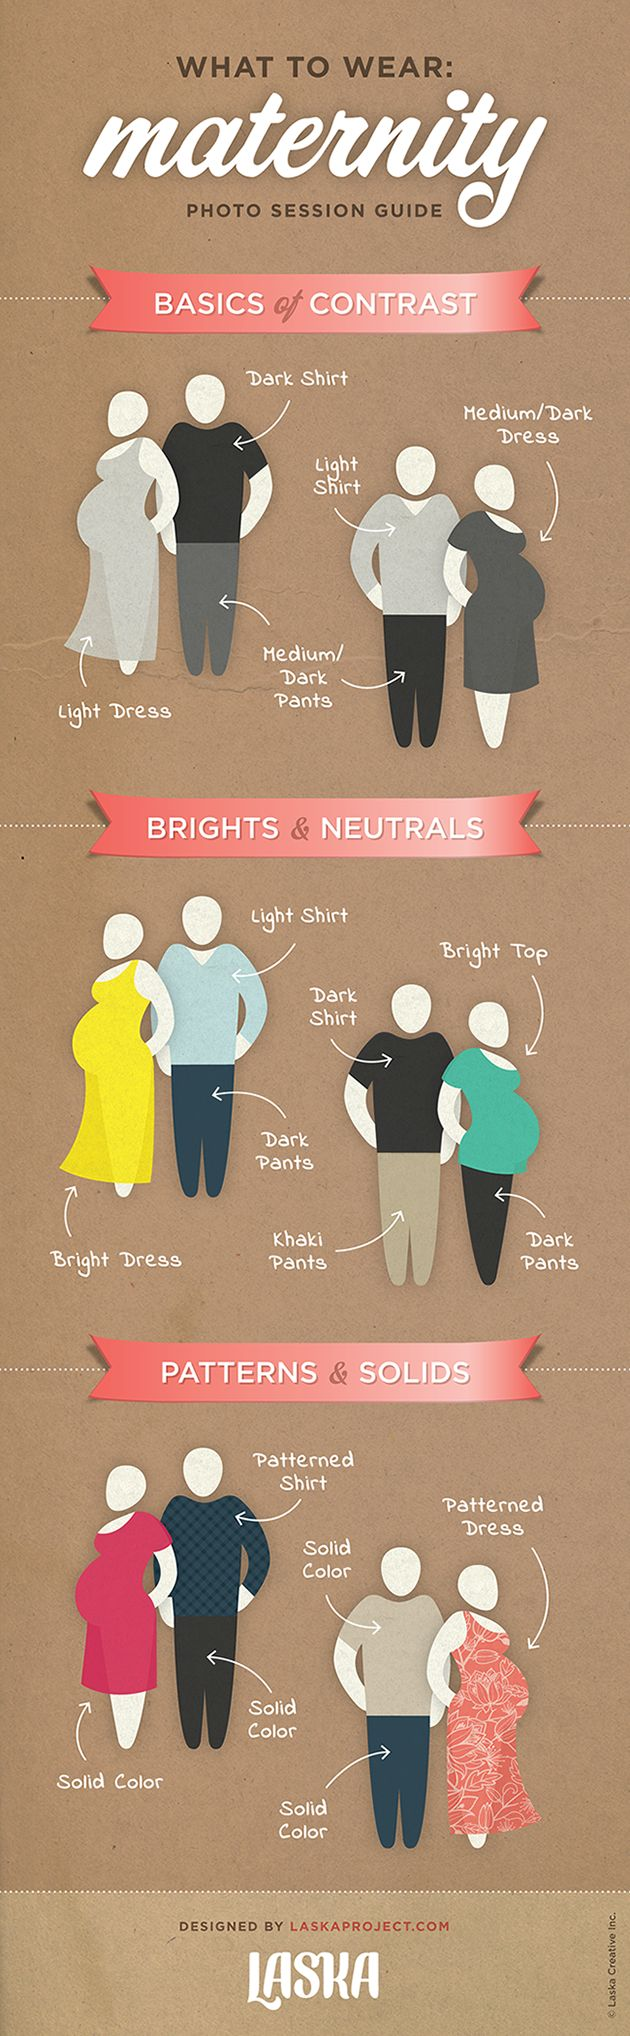 What to Wear to a Maternity Photo Session. I can see this coming in handy! :)